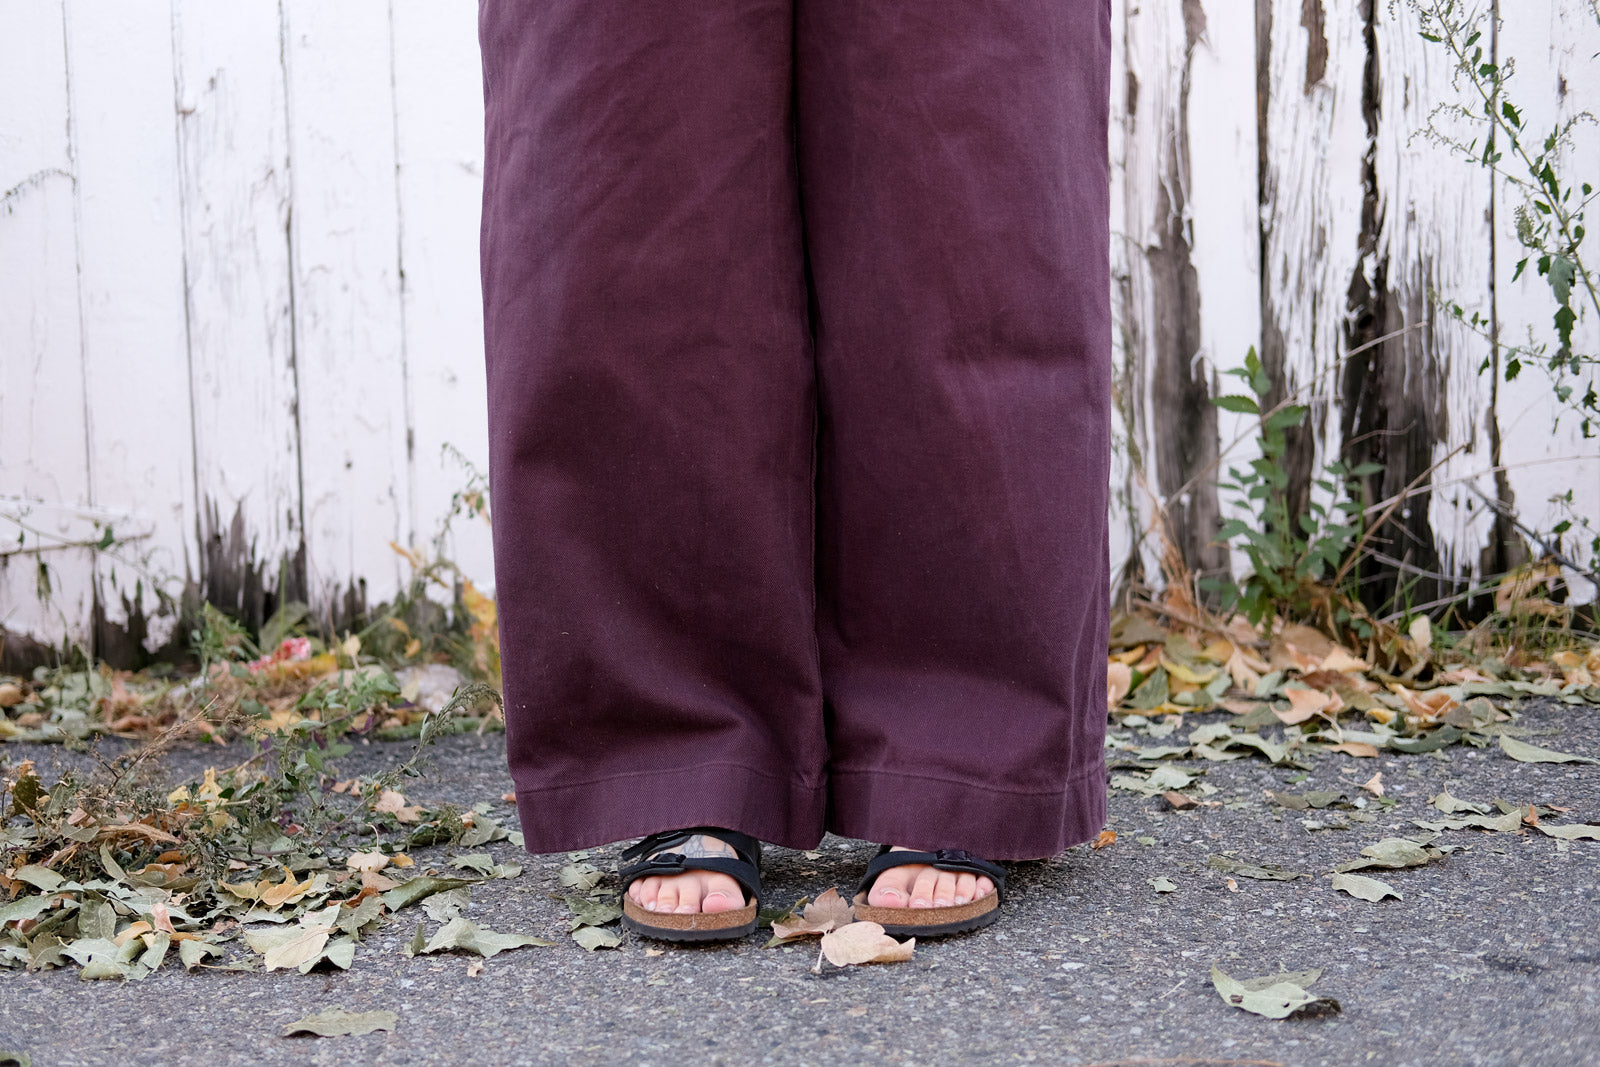 Hemline of the Jenny Trousers